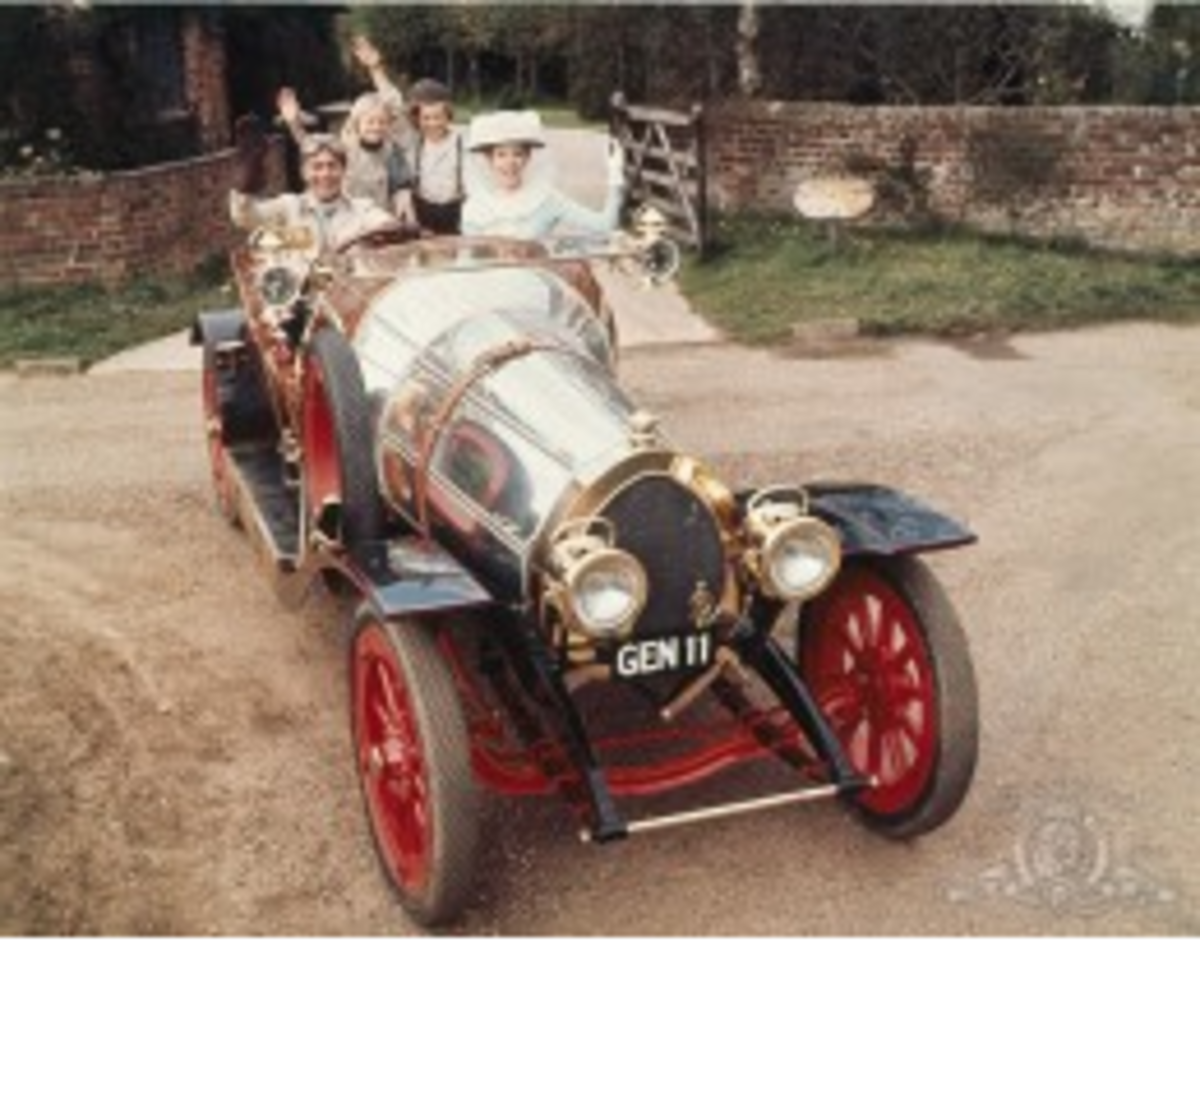 Chitty Chitty Bang Bang, Where is She Now?